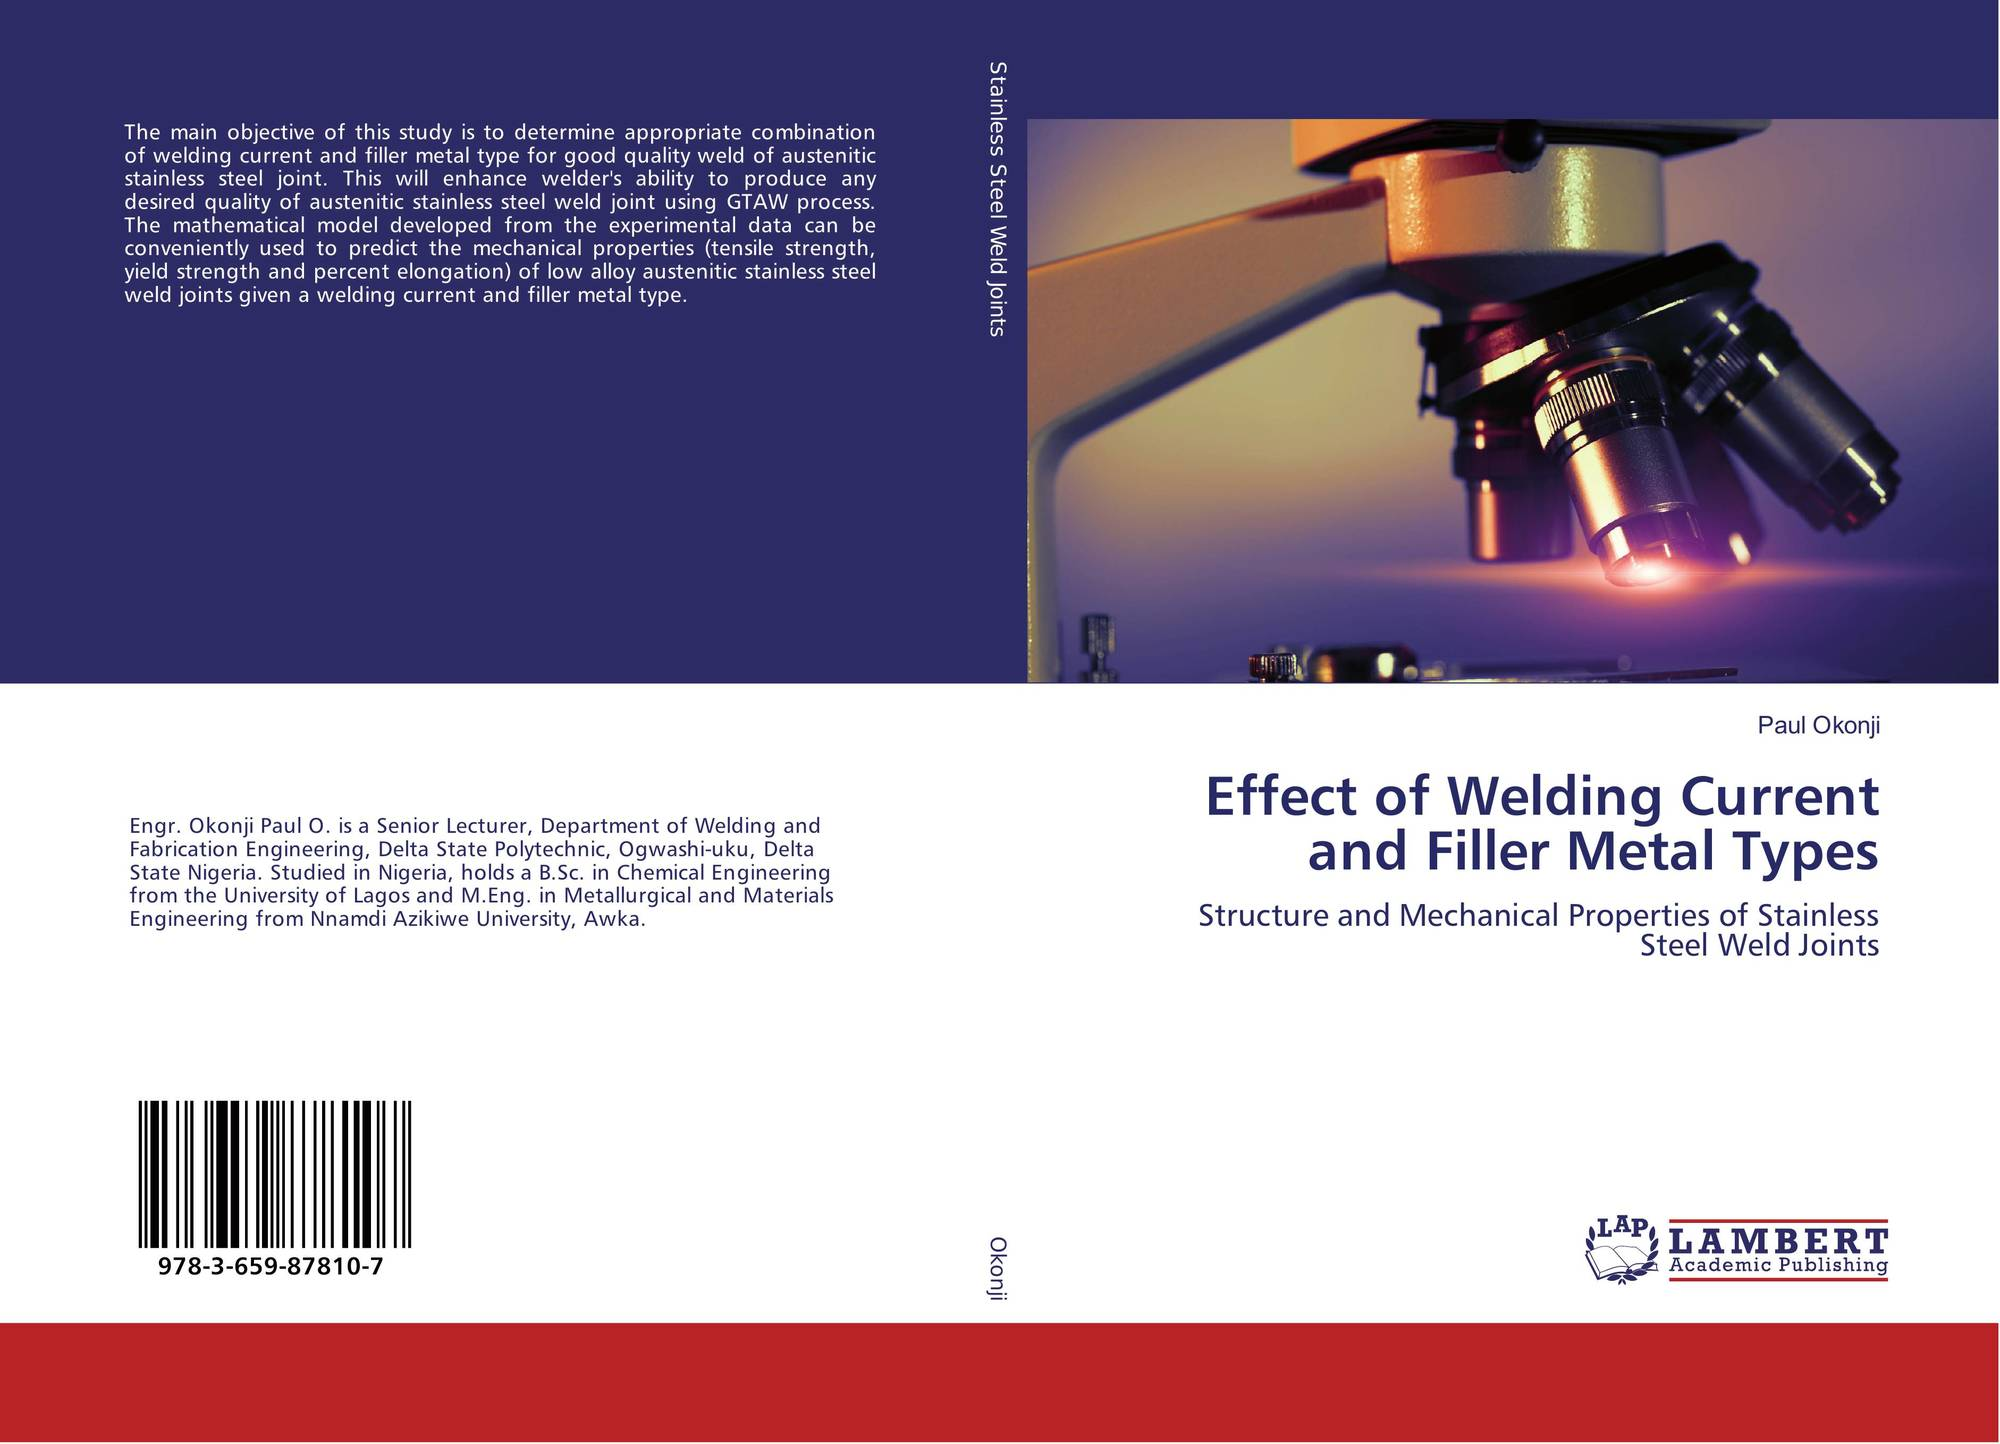 an experiment to determine the different types of welding processes Weld symbols are used to indicate the welding processes used in metal joining operations, whether the weld is localized or all around, whether it is a shop or field weld, and the contour of welds.